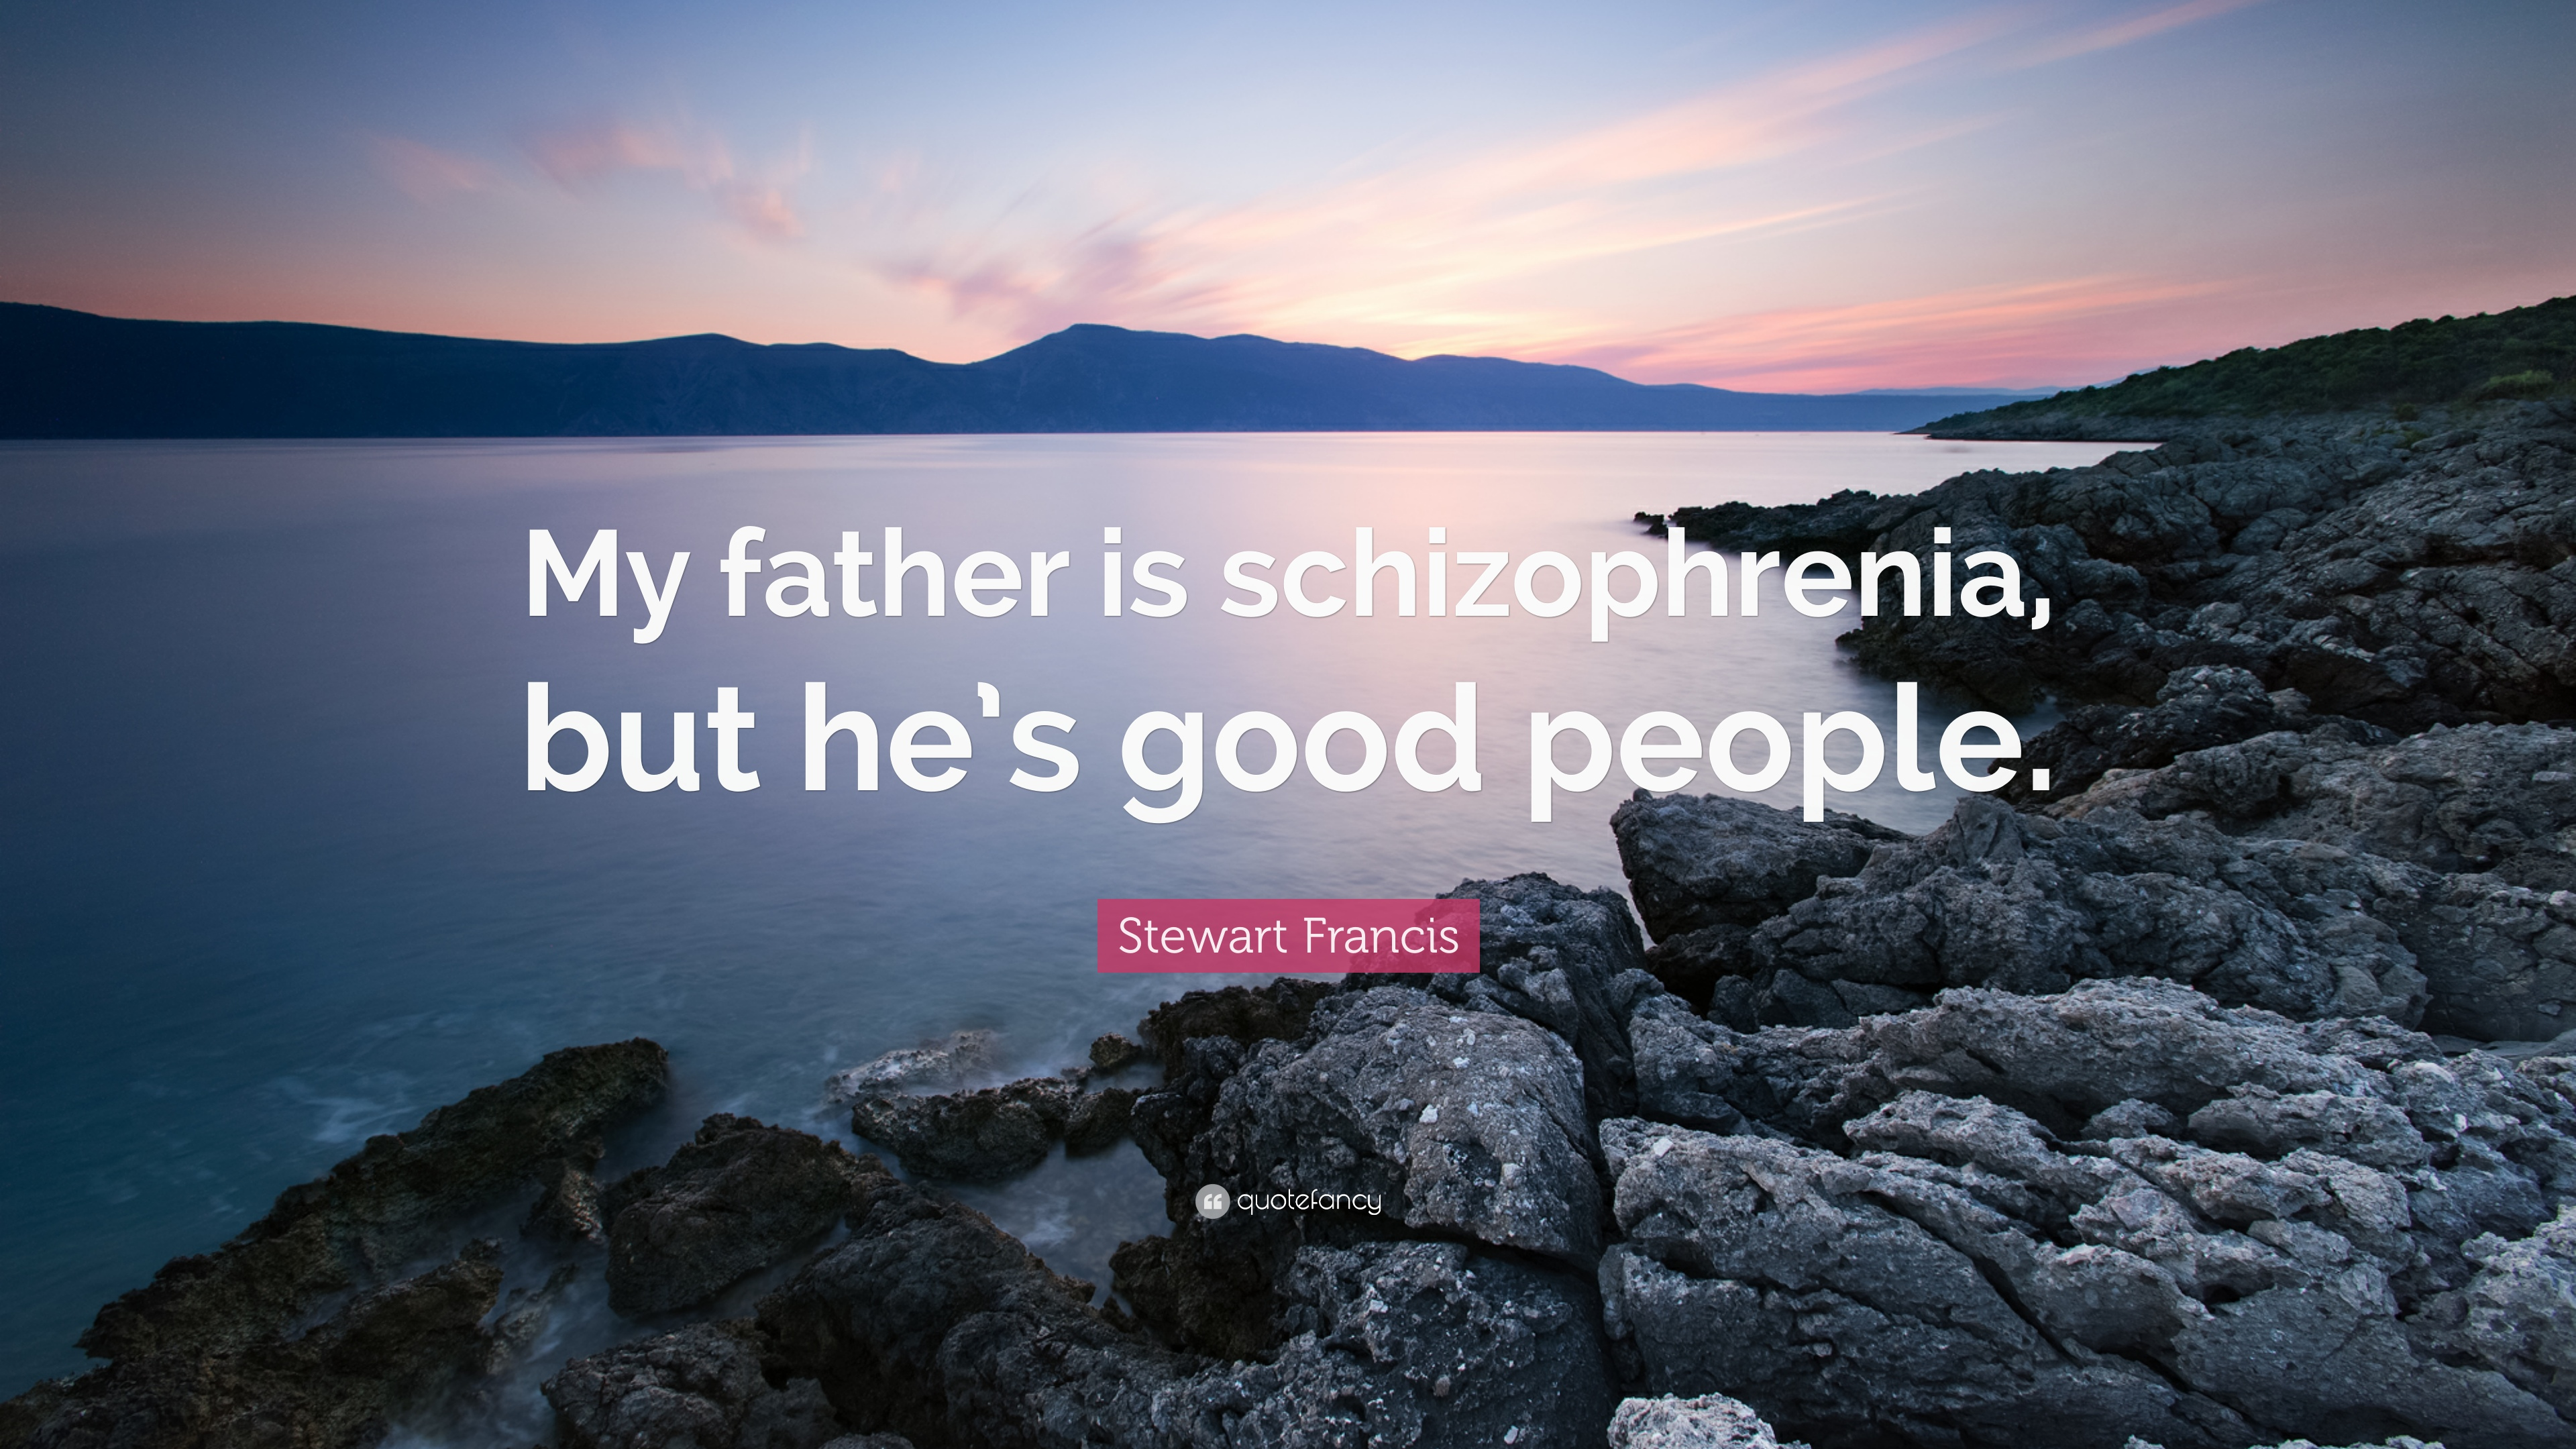 Stewart Francis Quote My Father Is Schizophrenia But He S Good People 7 Wallpapers Quotefancy